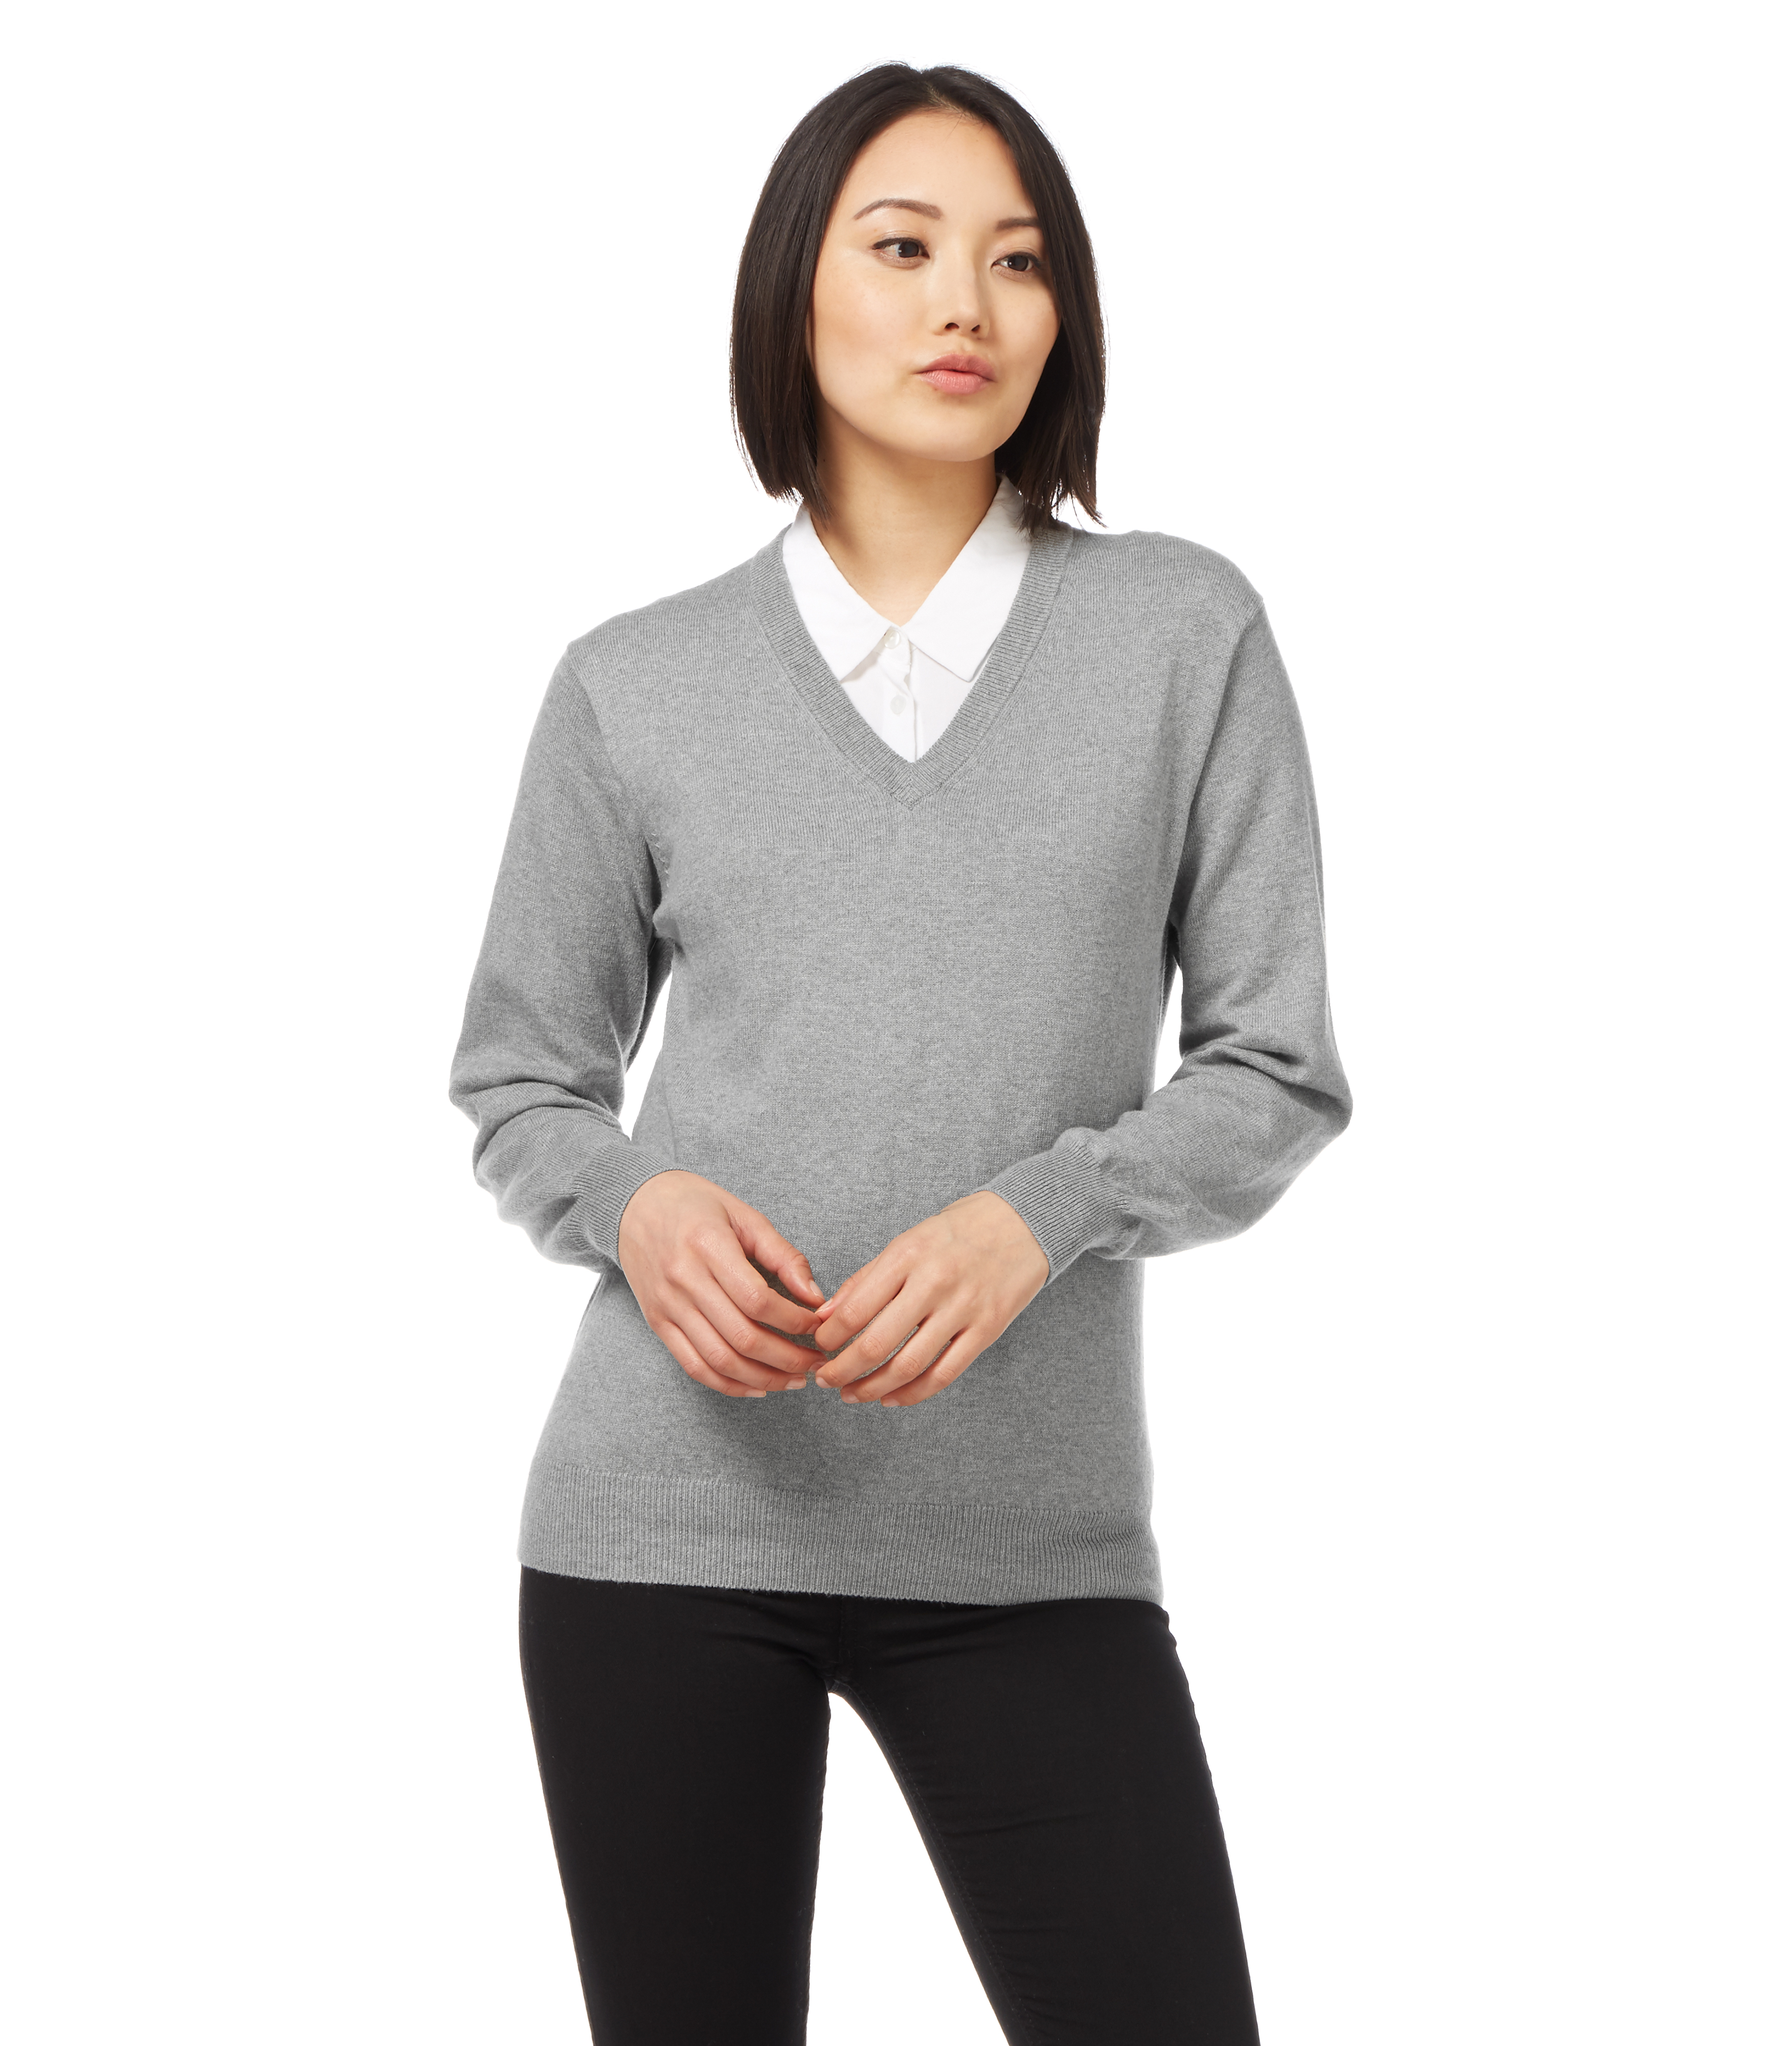 woolovers womens cashmere cotton v neck long sleeve sweater pullover winter top ebay. Black Bedroom Furniture Sets. Home Design Ideas